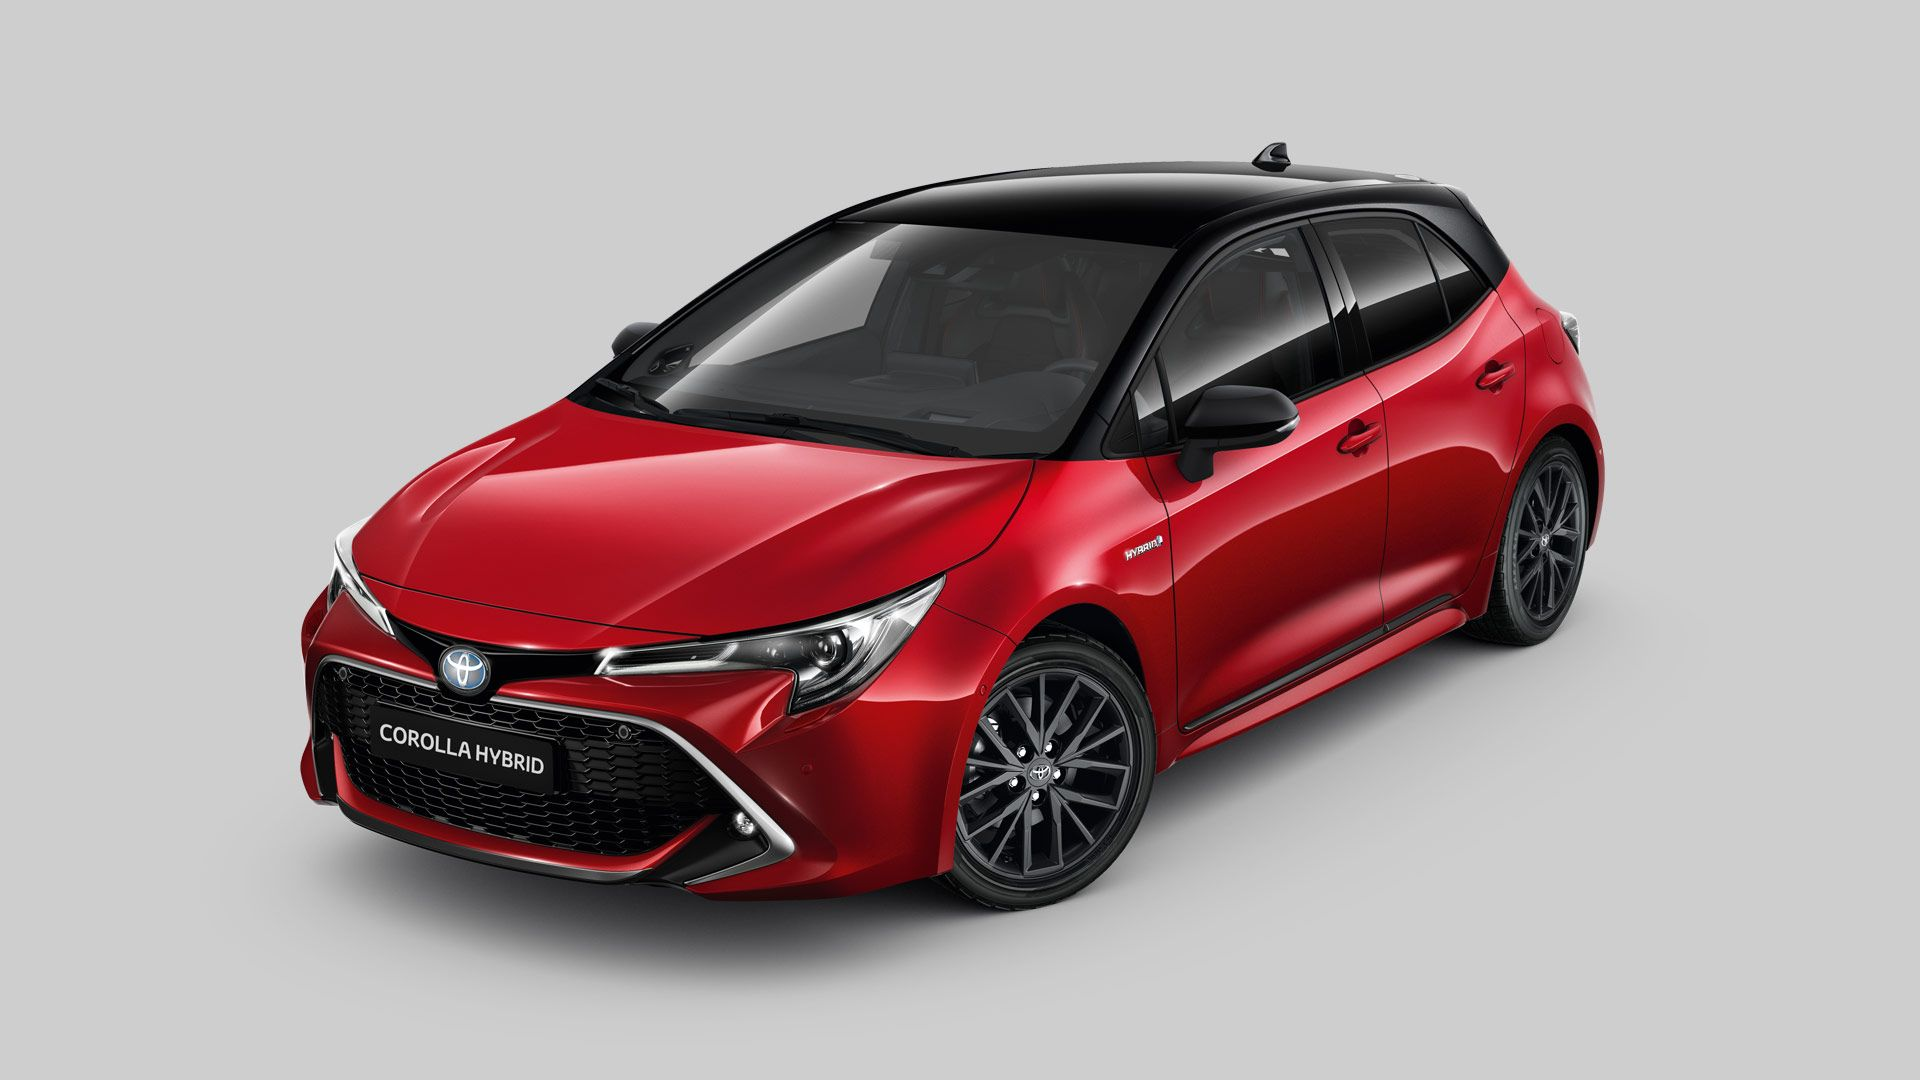 The best performance brings Corolla in the list of most